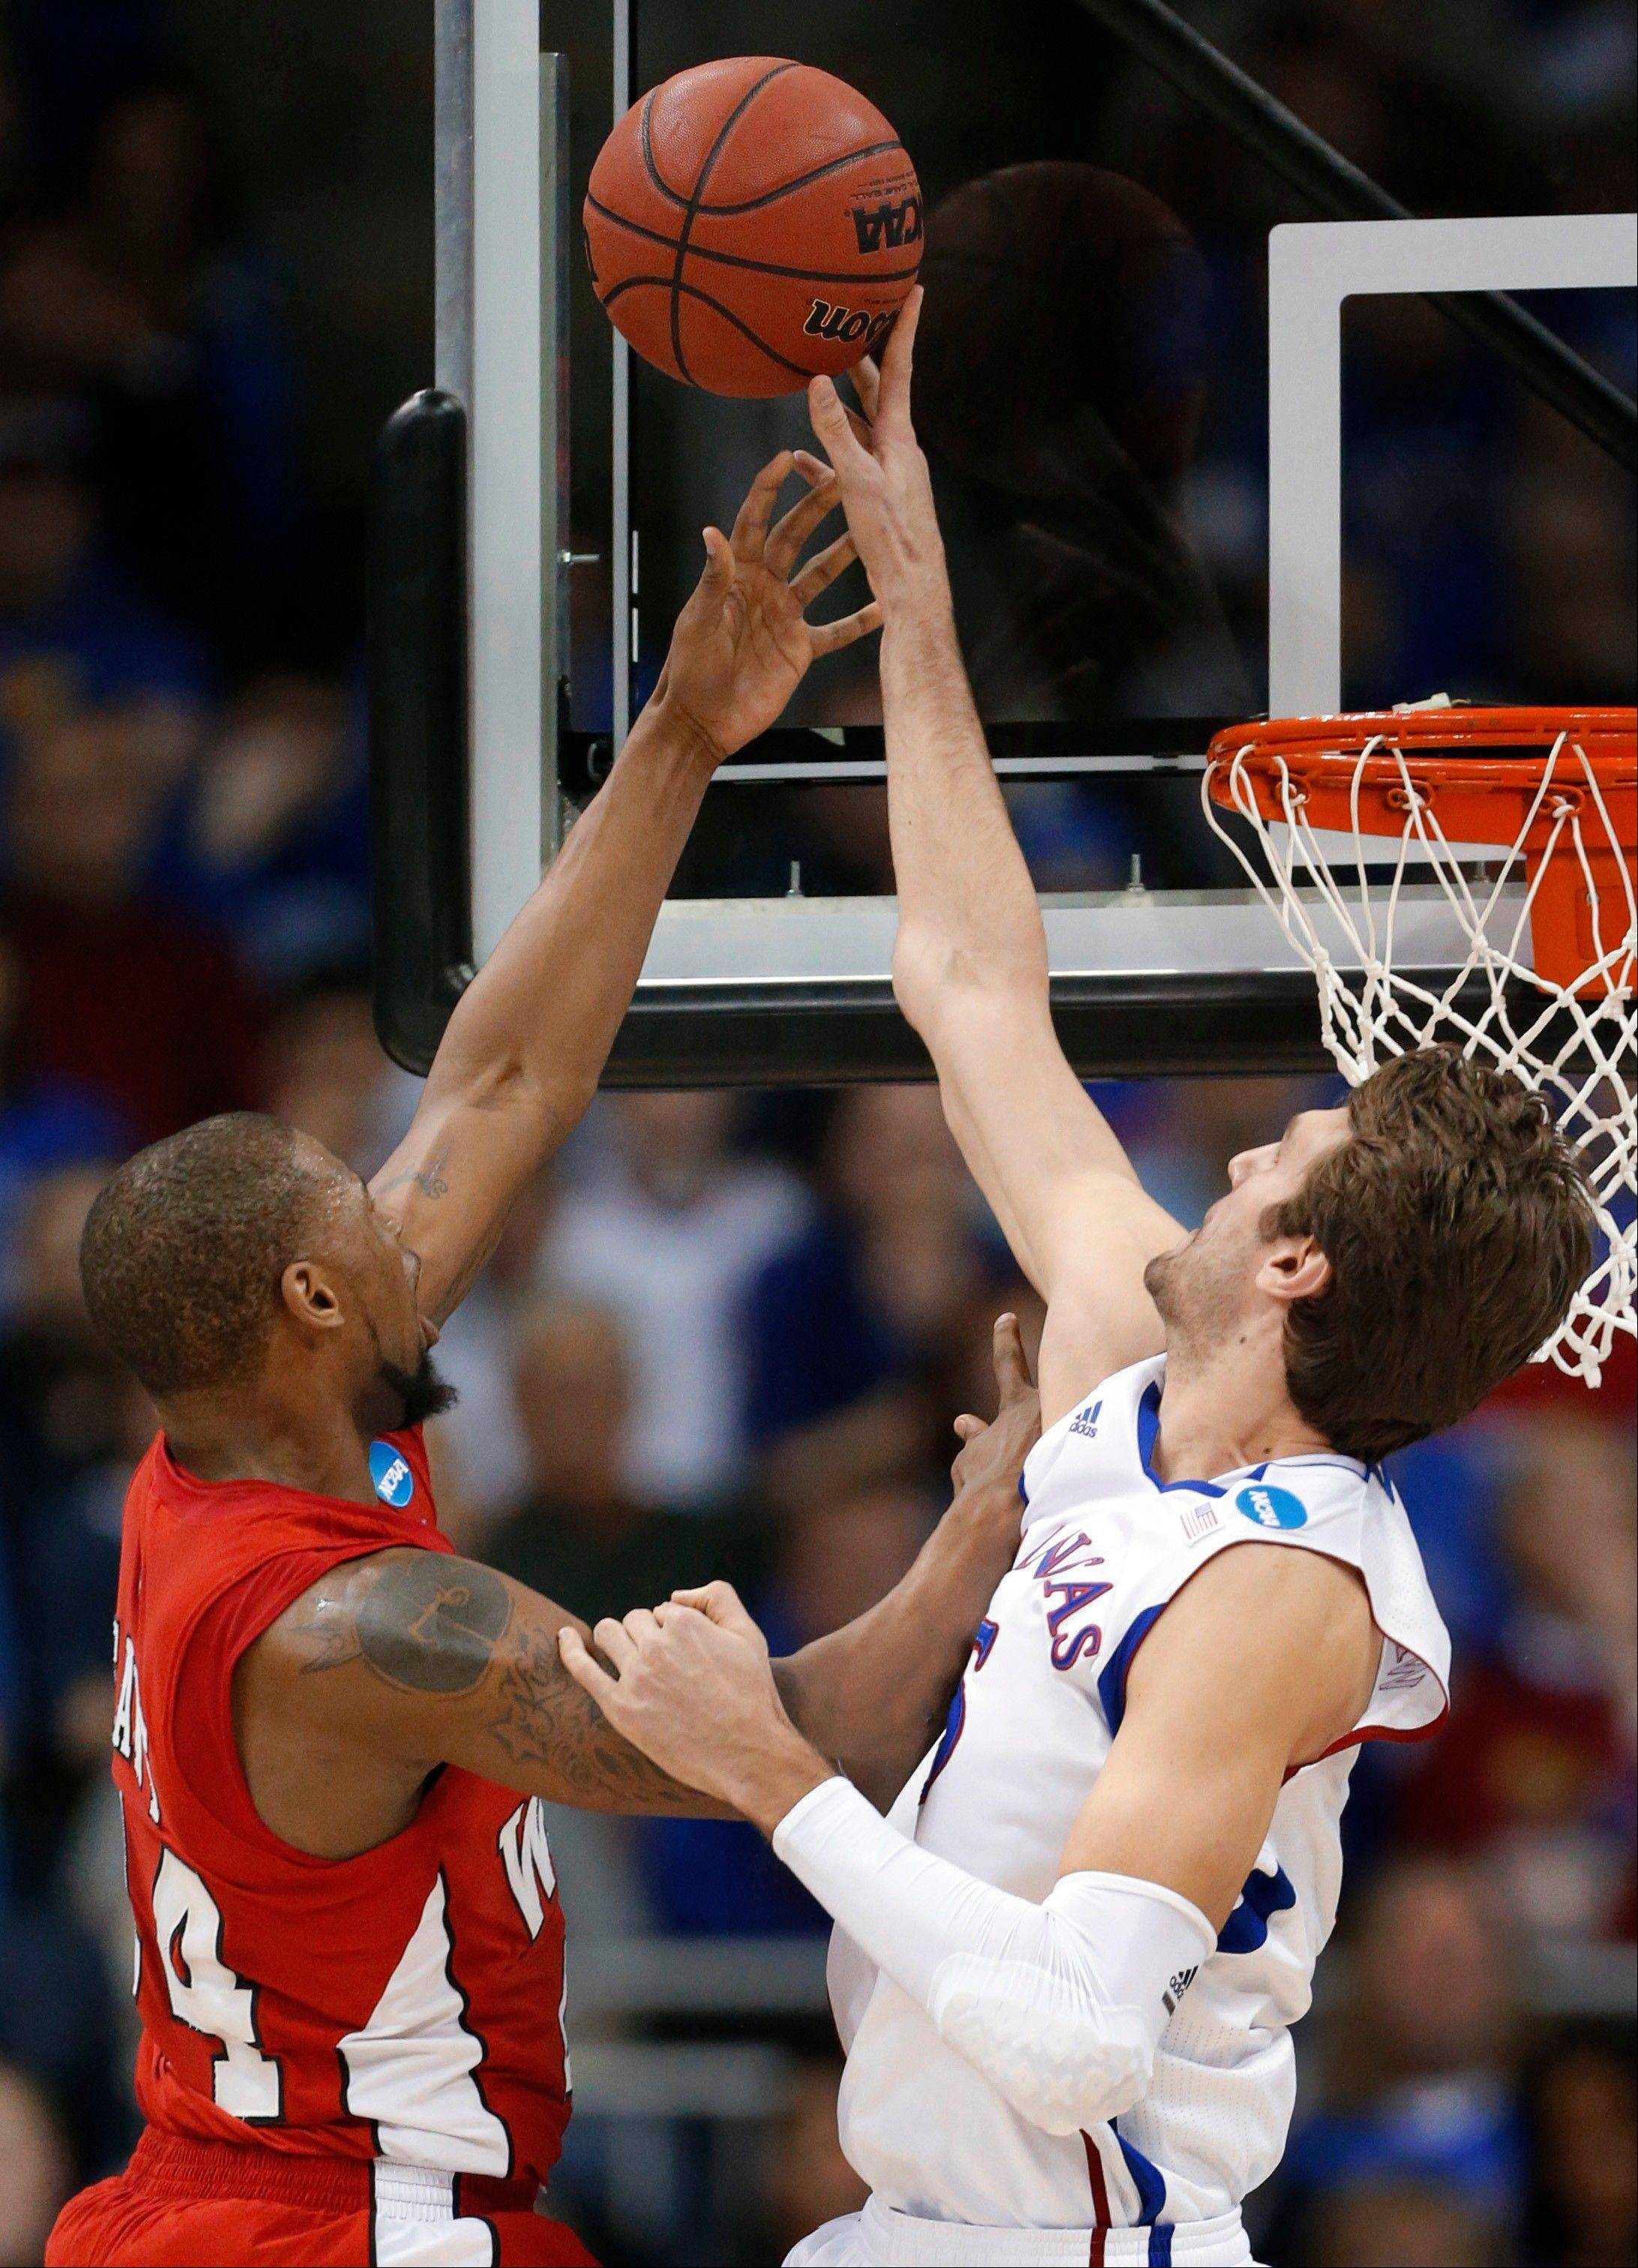 Kansas center Jeff Withey (5) blocks a shot by Western Kentucky forward George Fant (44) during the first half of a second-round game in the NCAA men's college basketball tournament in Kansas City, Mo., Friday, March 22, 2013. (AP Photo/Orlin Wagner)